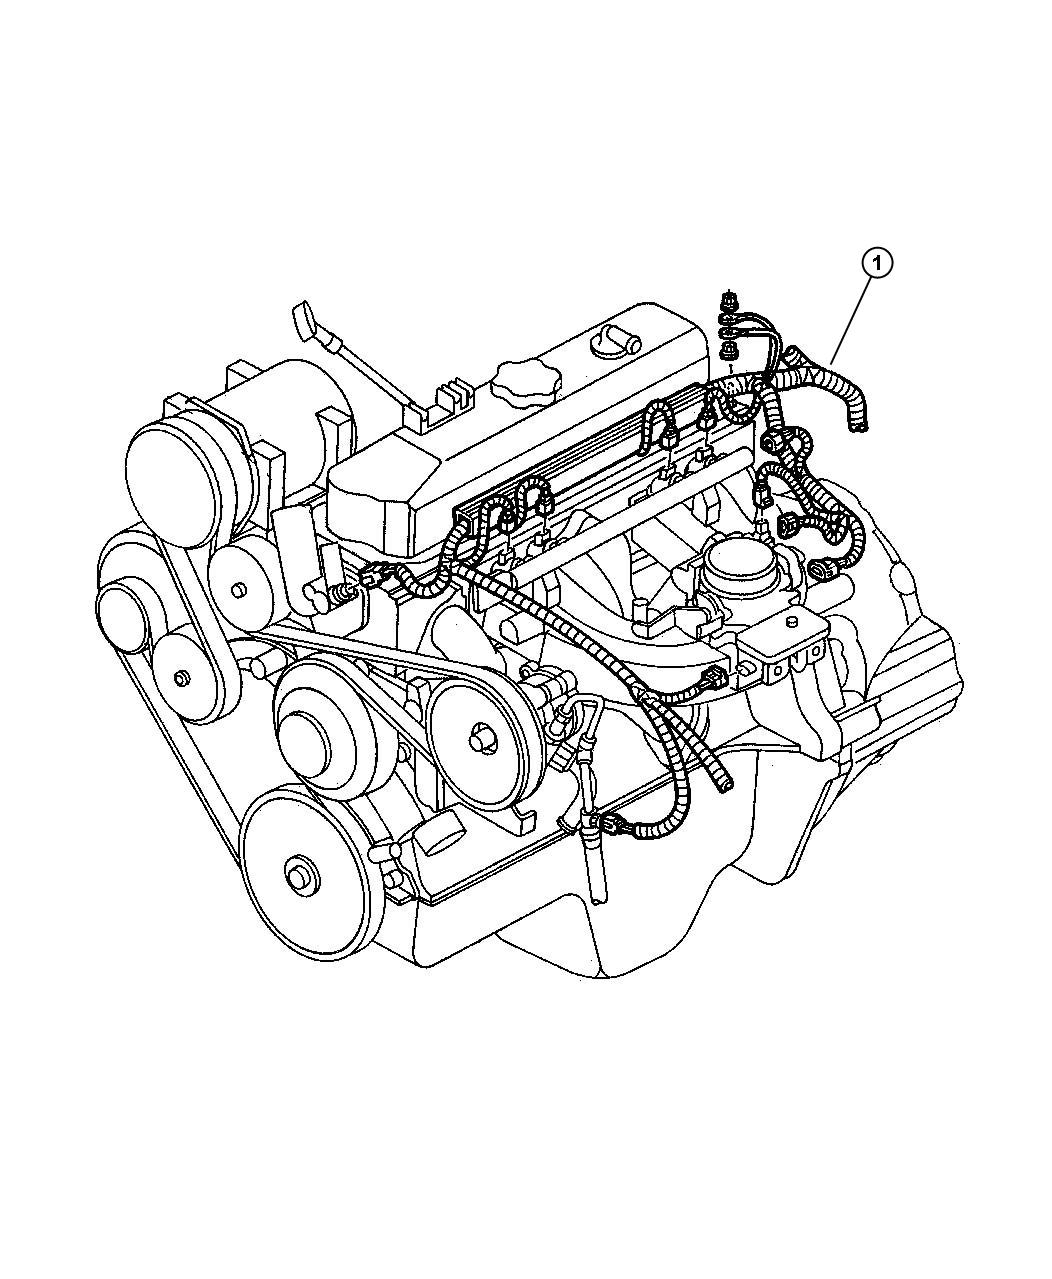 Dodge Dakota Wiring Engine Federal And Export U S 50